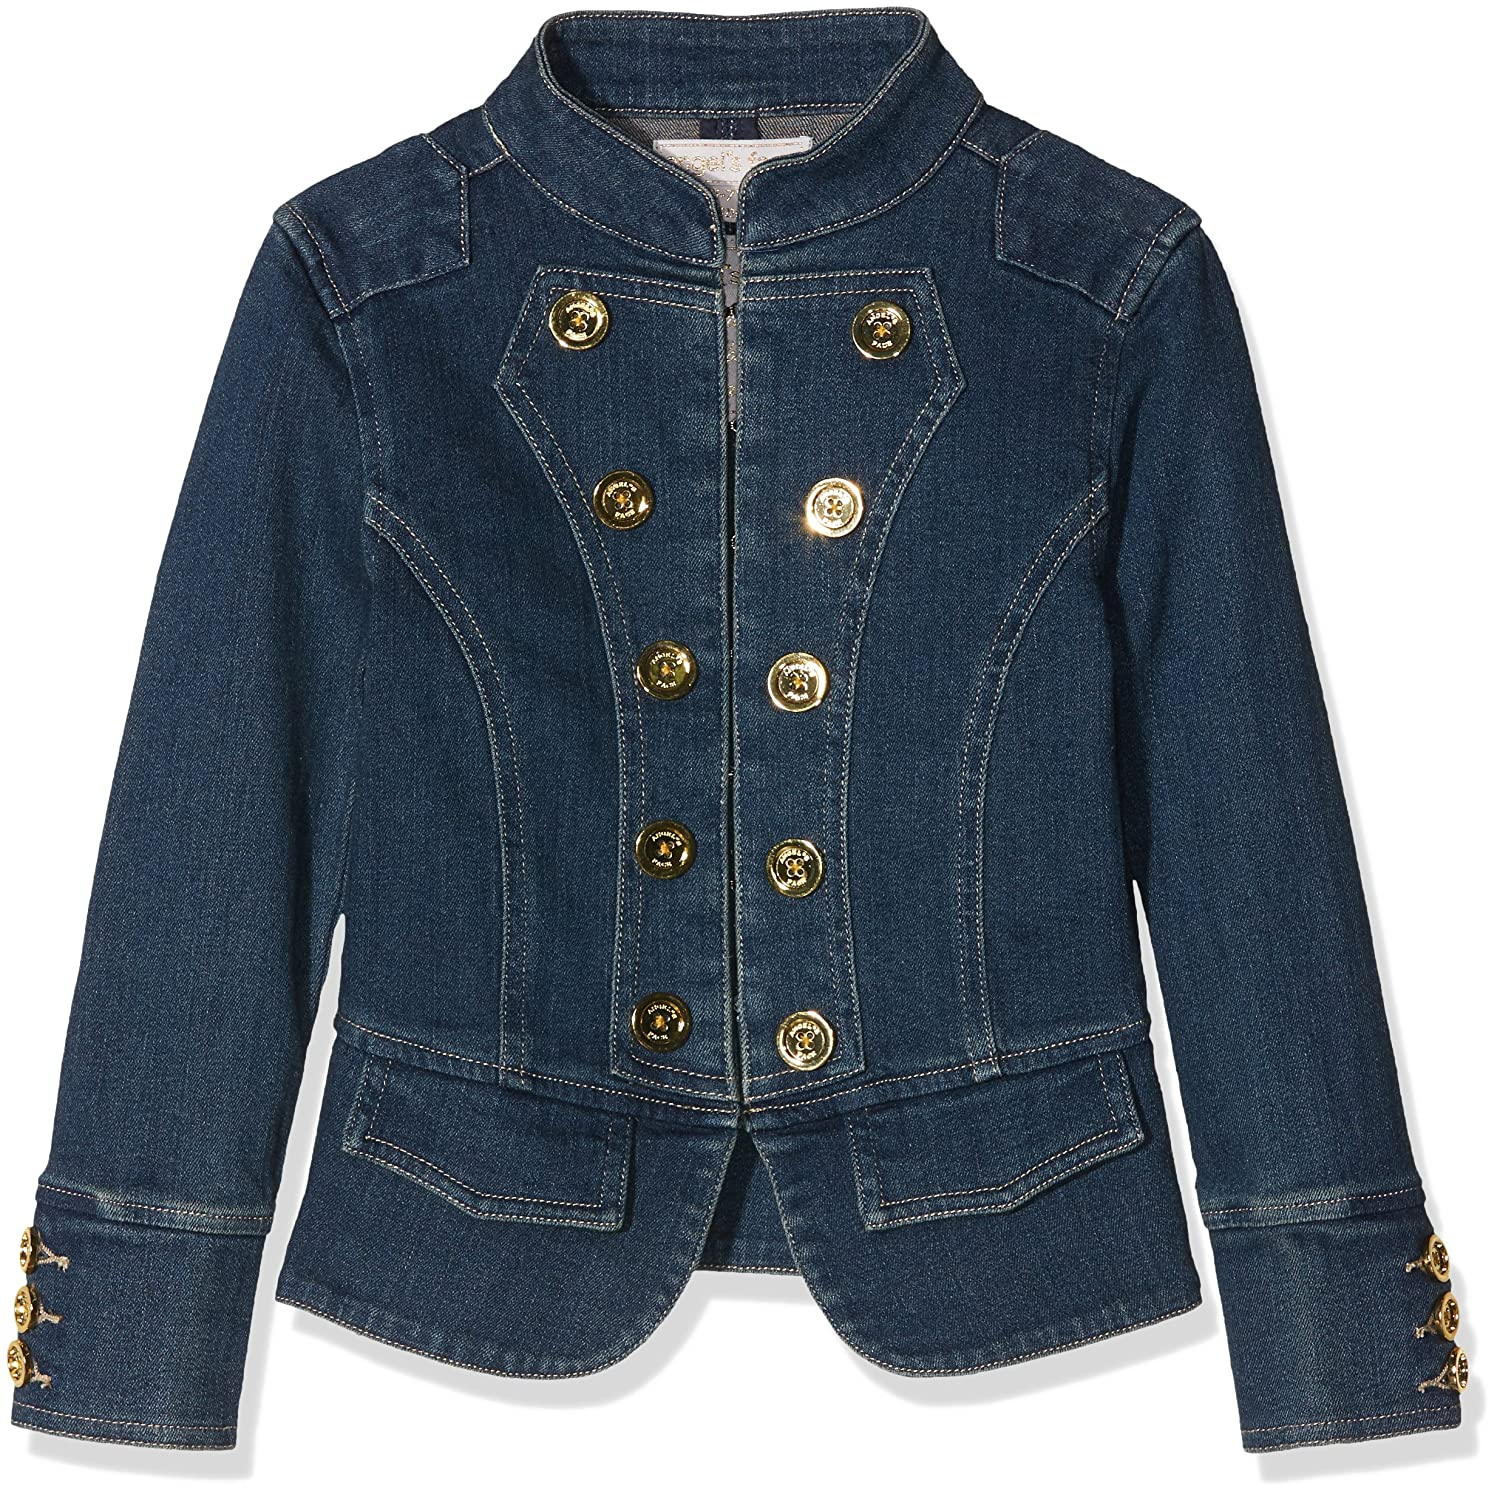 Bleu (Denim Denim) 10-11 ans Angels Face Denim veste, Blouson Fille